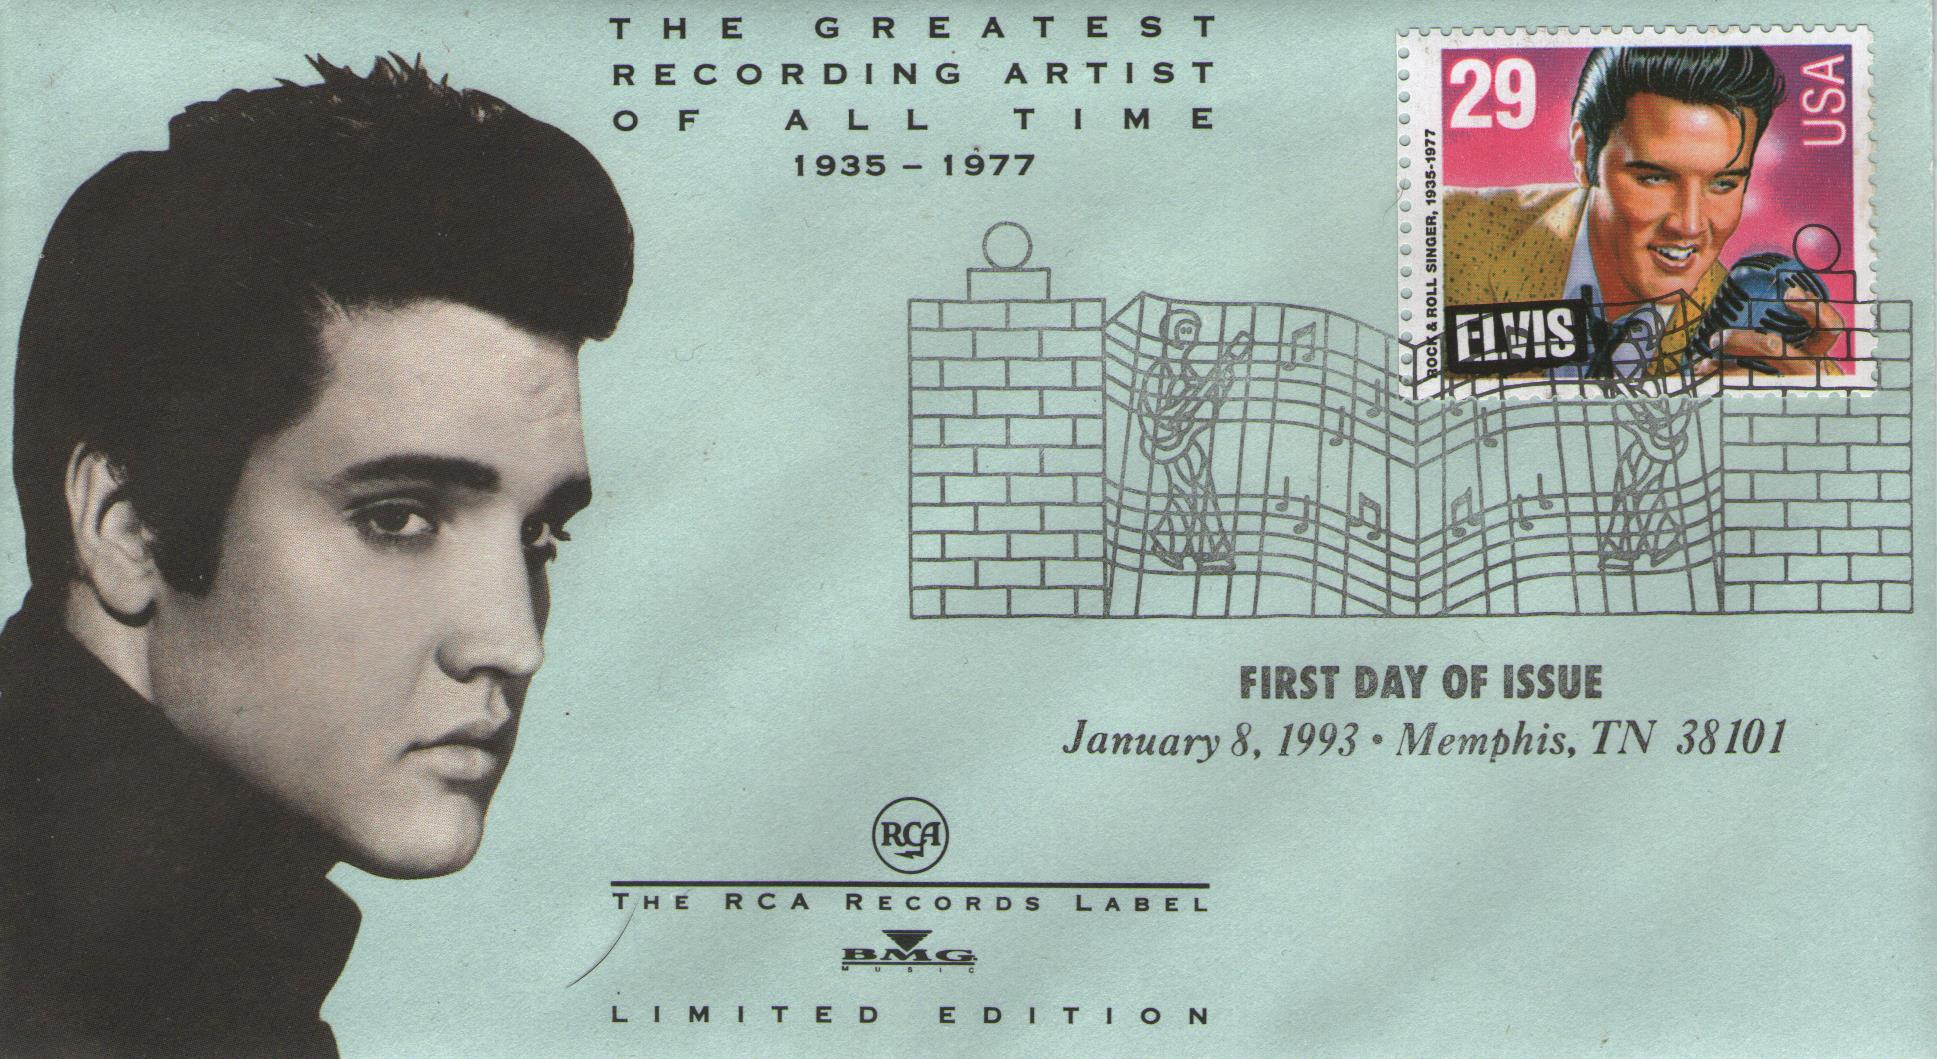 ELVIS - FROM NASHVILLE TO MEMPHIS - THE ESSENTIAL 60'S MASTERS Img46wqst